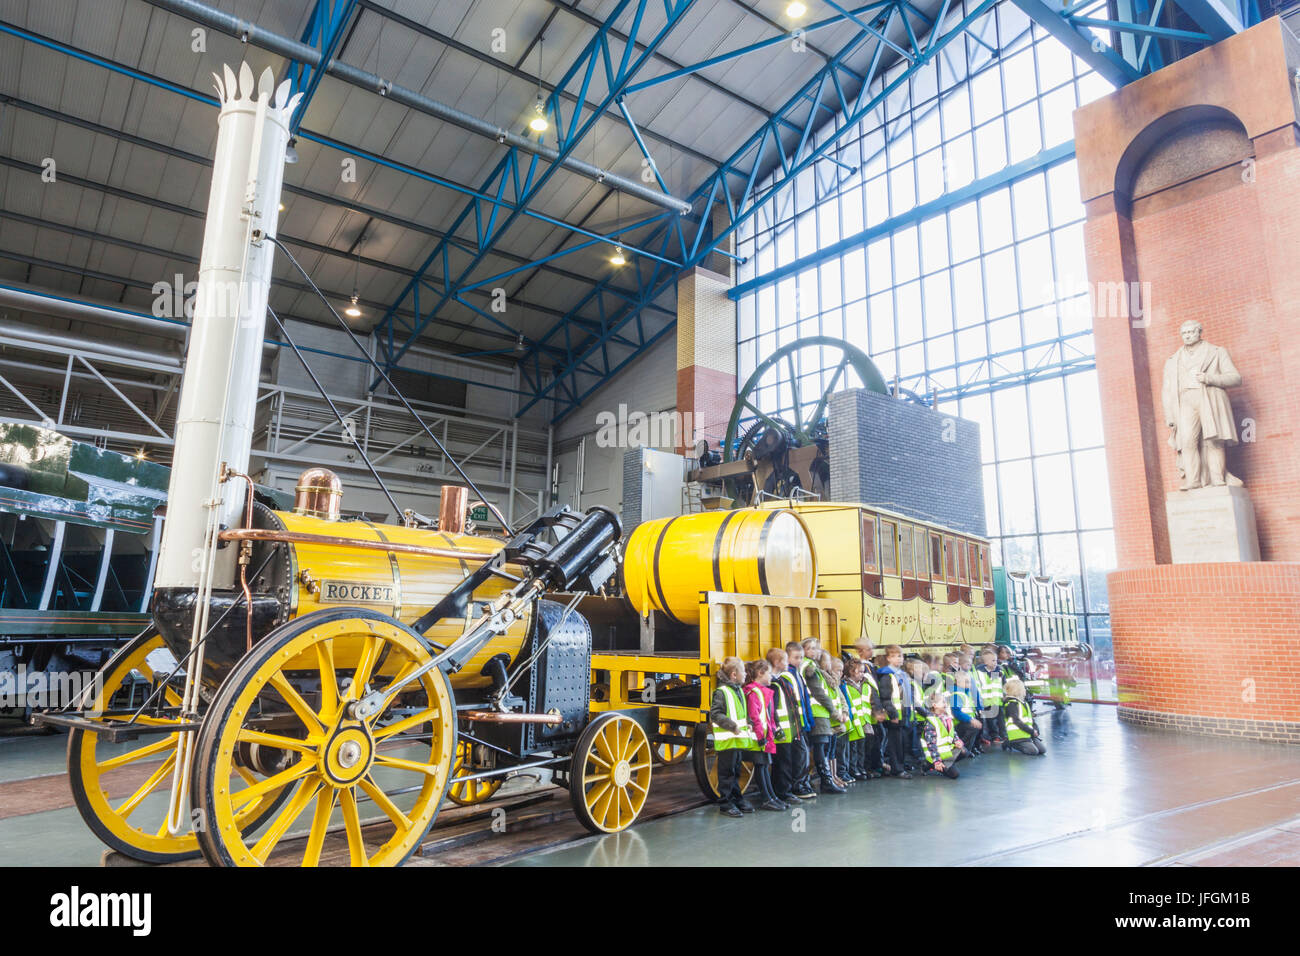 England, Yorkshire, York, National Railway Museum, Exhibit of Reproduction Stephenson's Rocket - Stock Image